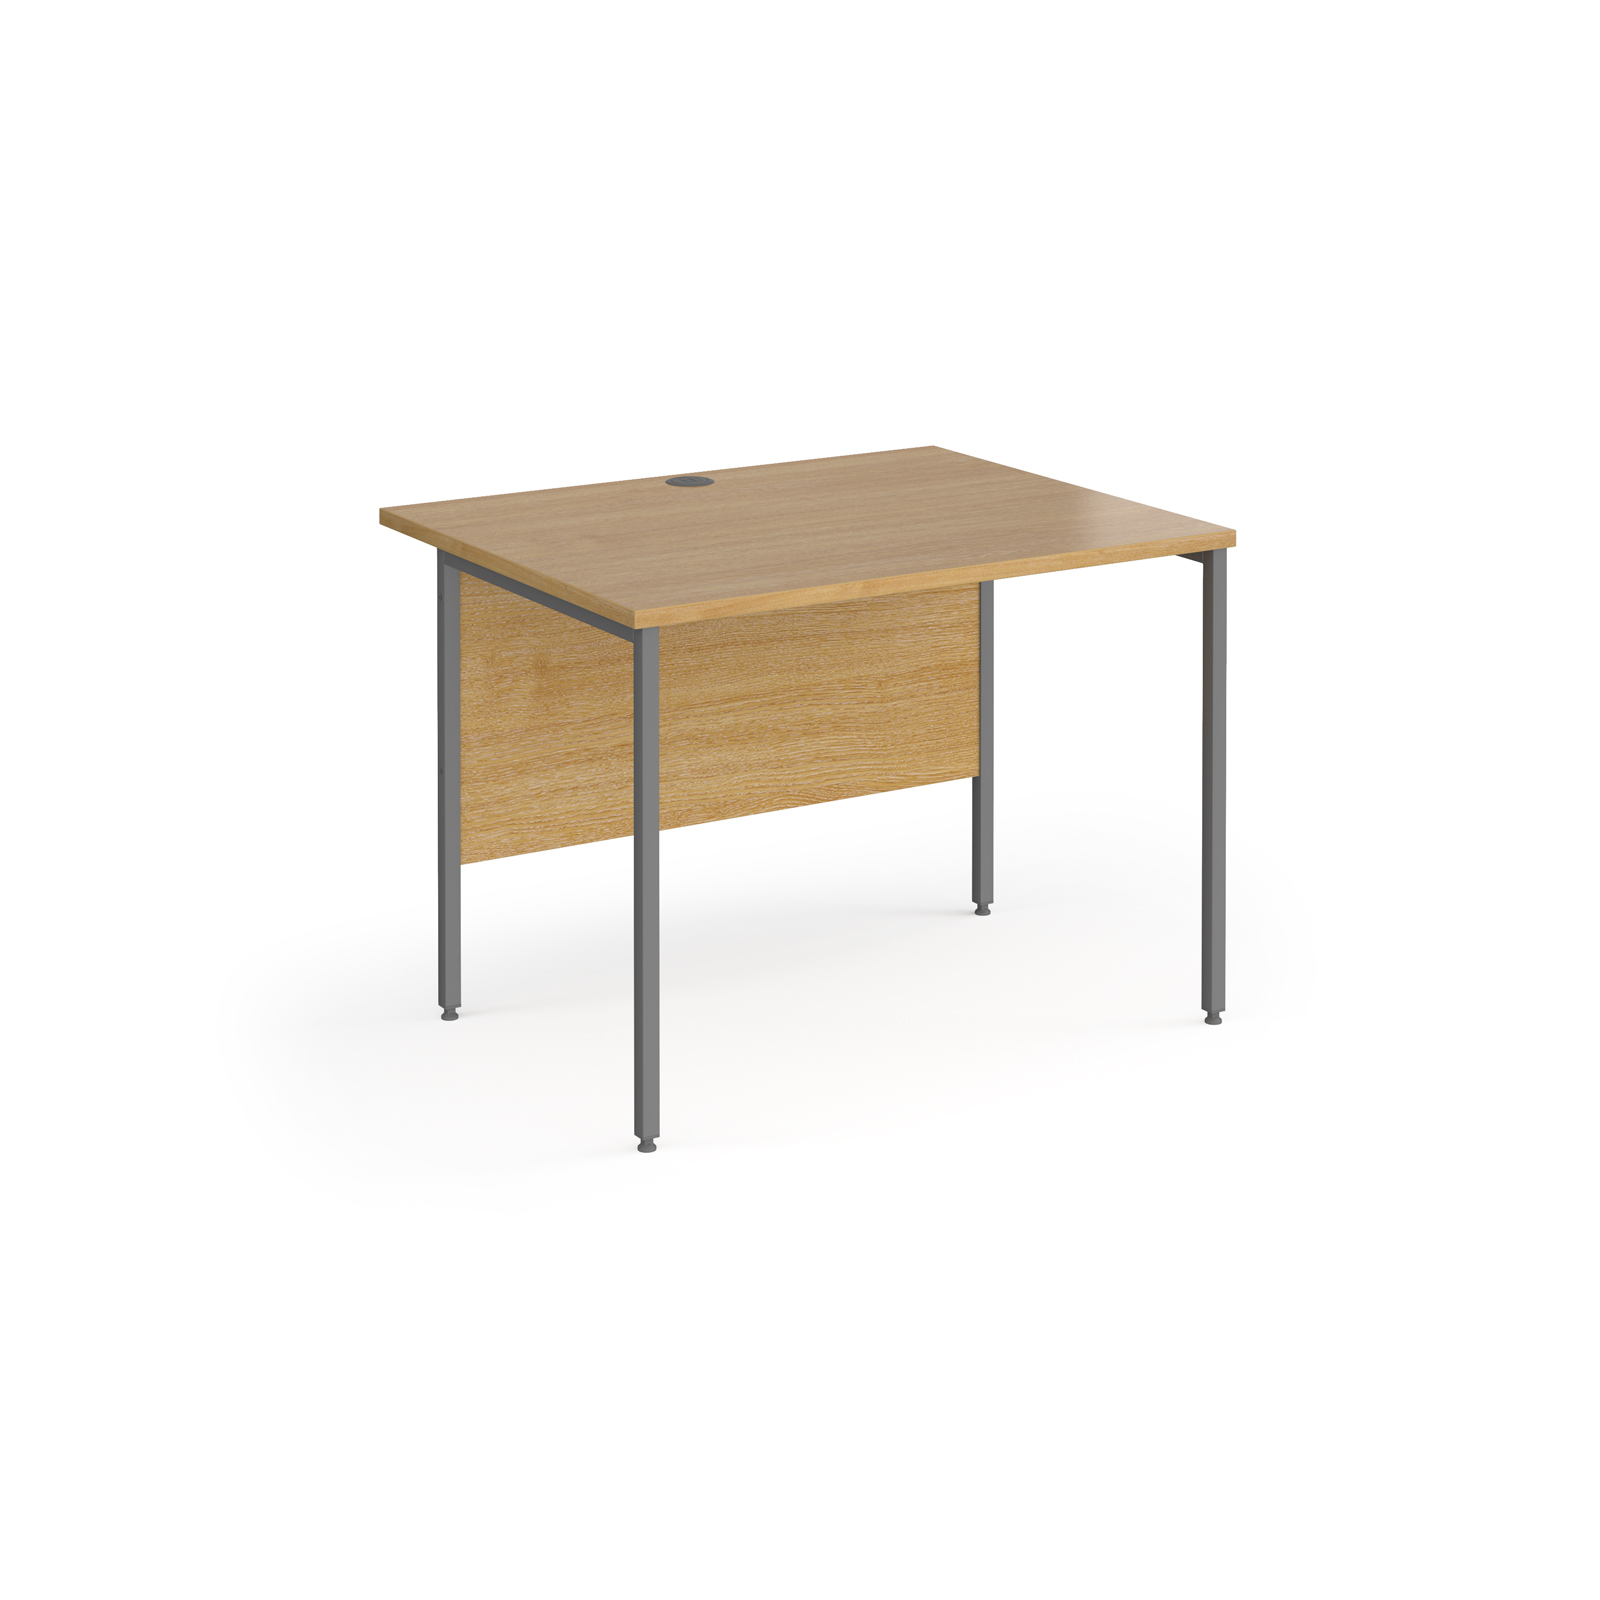 Contract 25 straight desk with graphite H-Frame leg 1000mm x 800mm - oak top